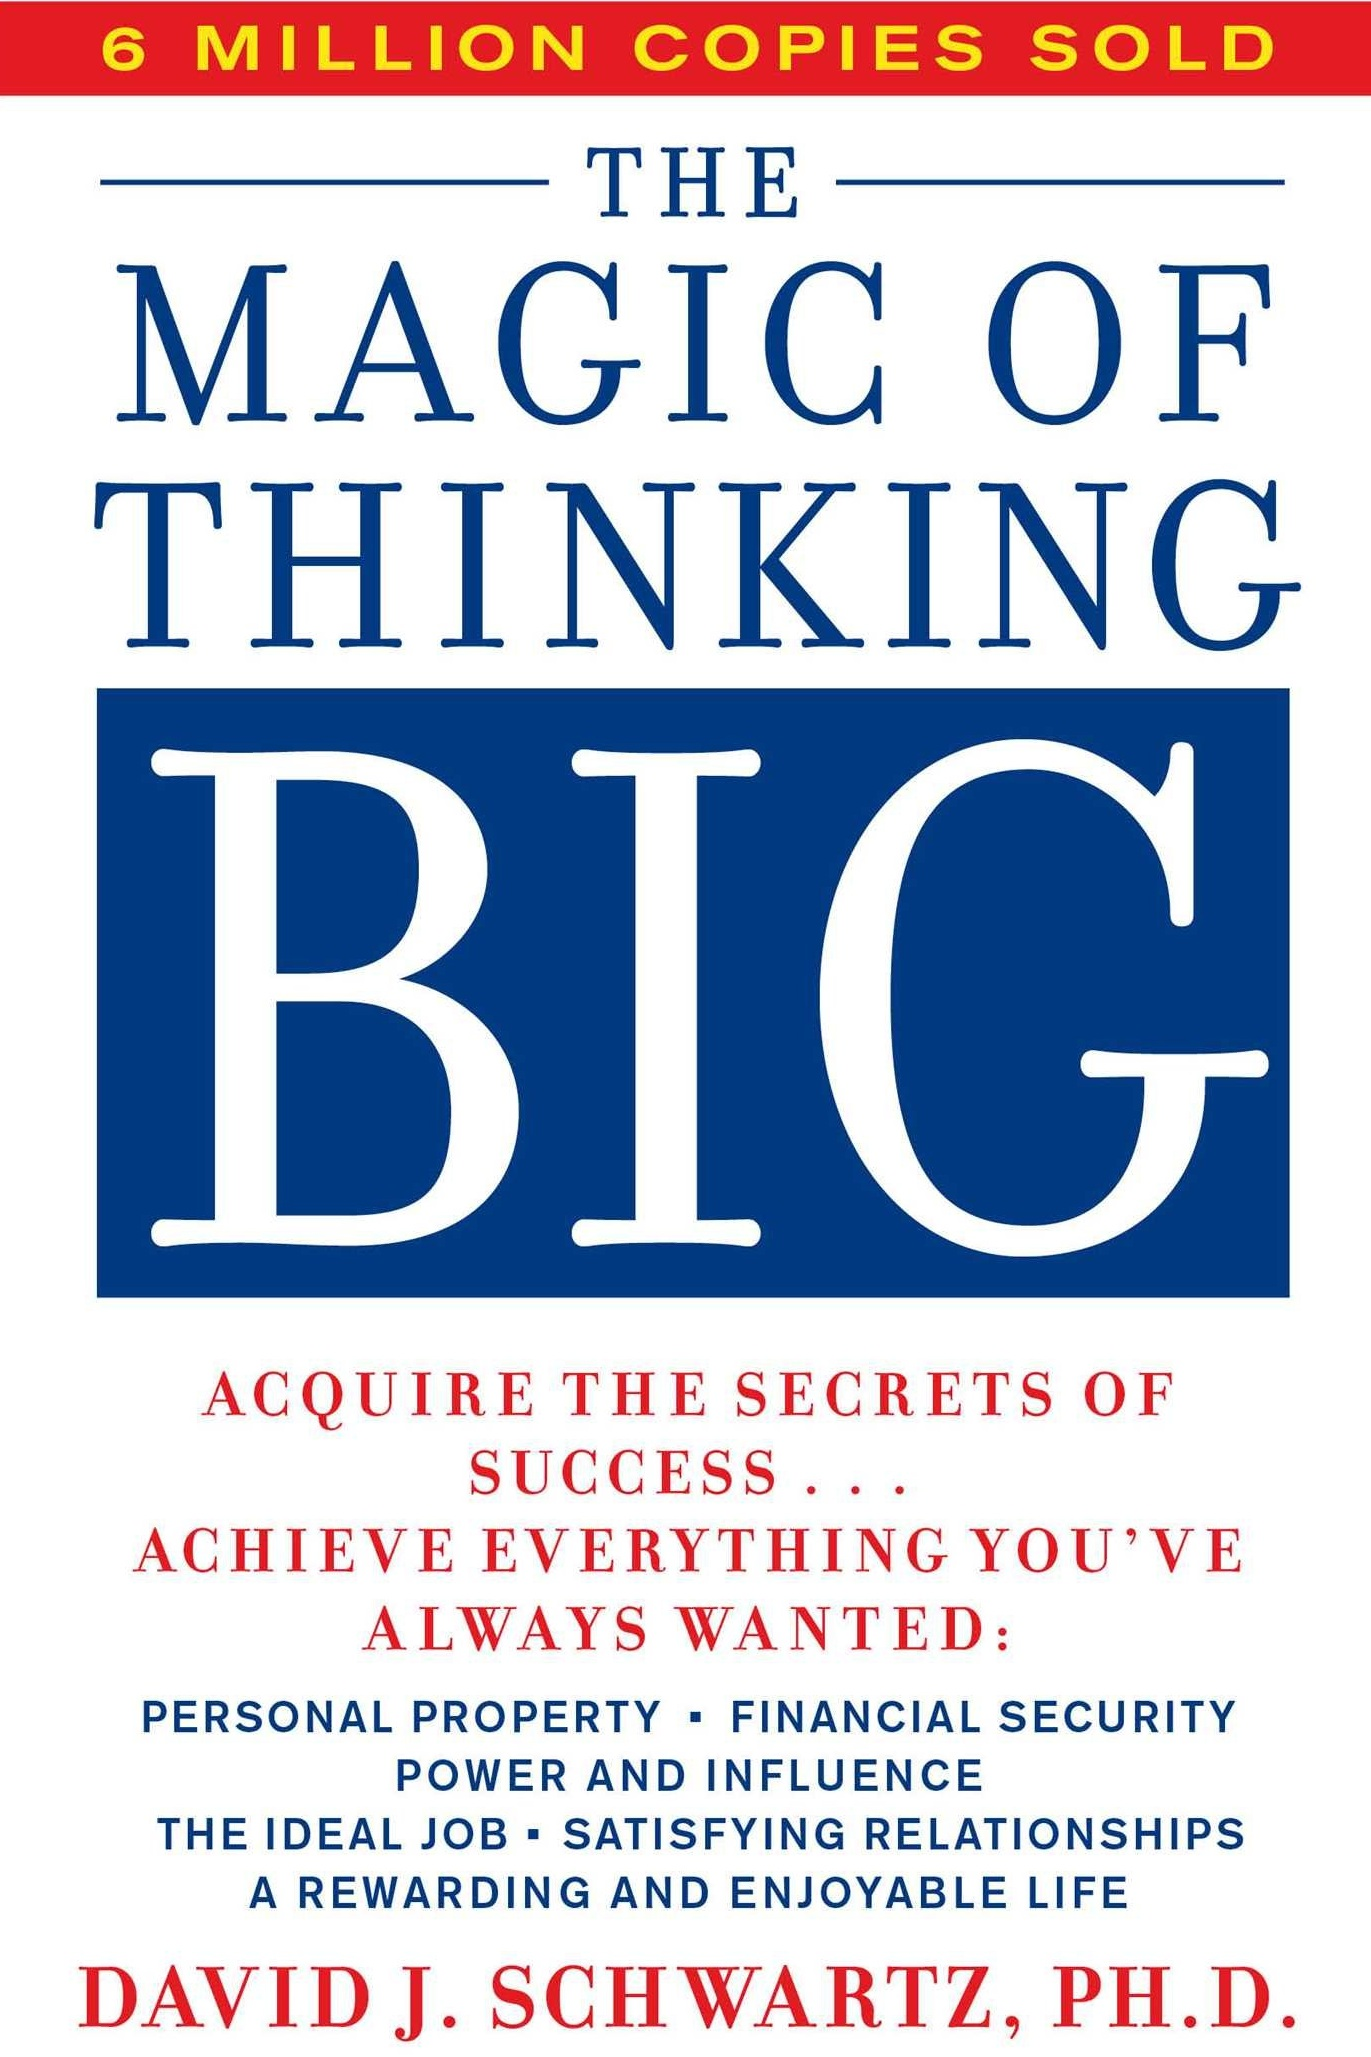 DAVID . SCHWARTZ THE MAGIC OF THINKING BIG.jpg